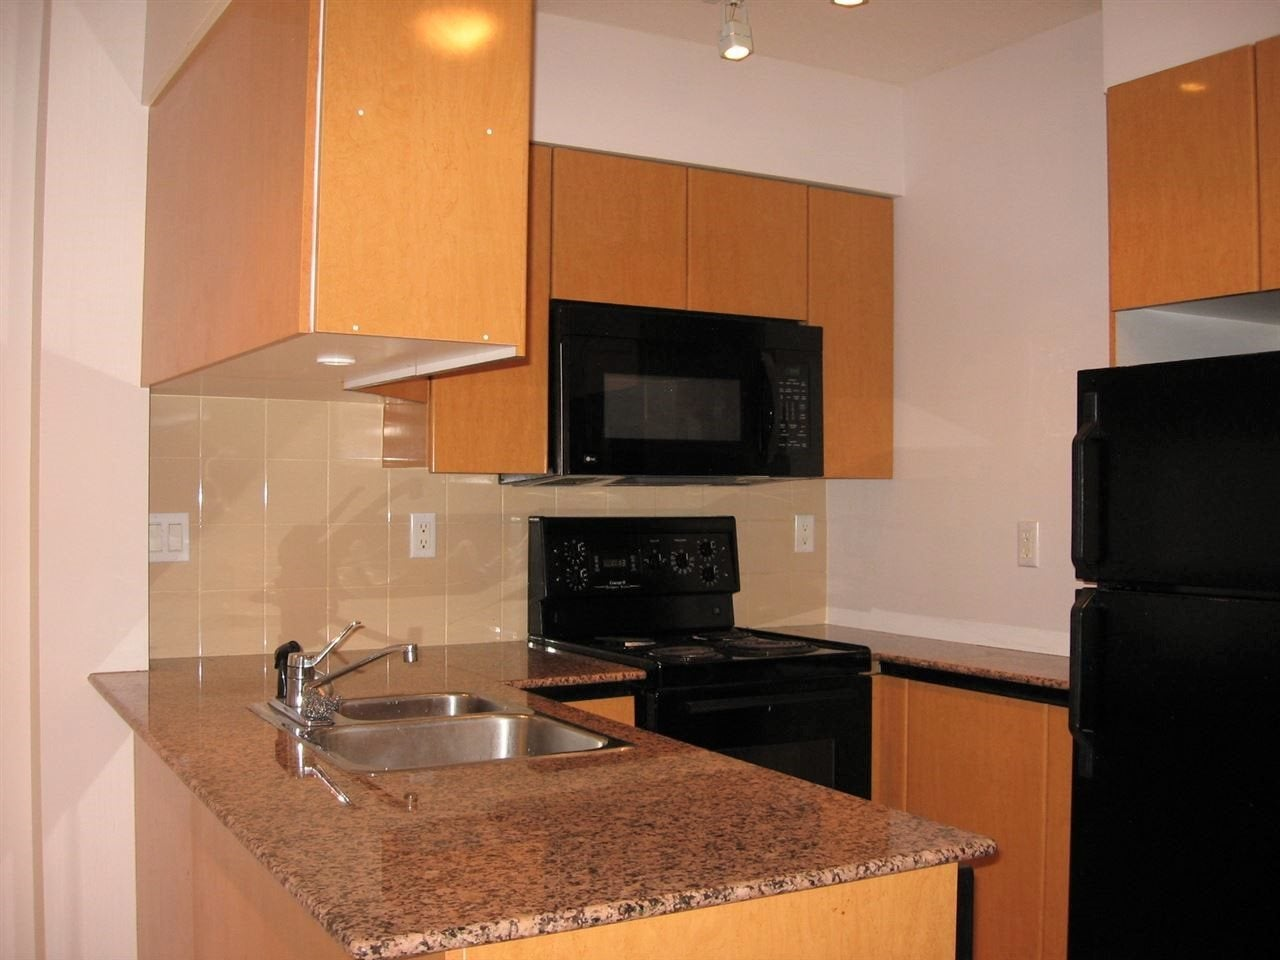 801 1189 HOWE STREET - Downtown VW Apartment/Condo for sale, 1 Bedroom (R2423012) - #4